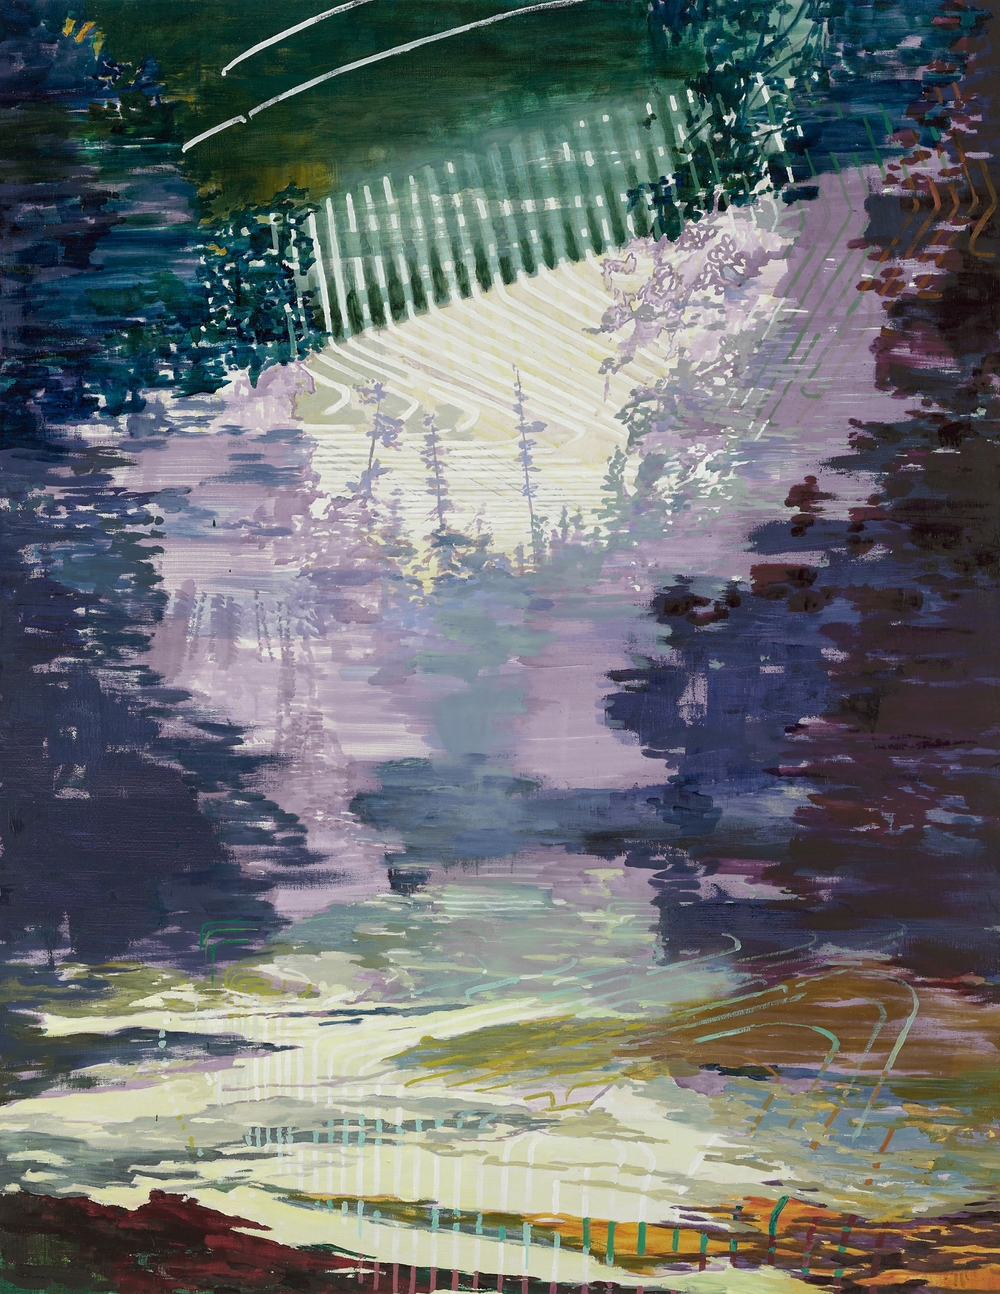 Neon Night Sky, 2009, 180 x 140 cm, oil on canvas